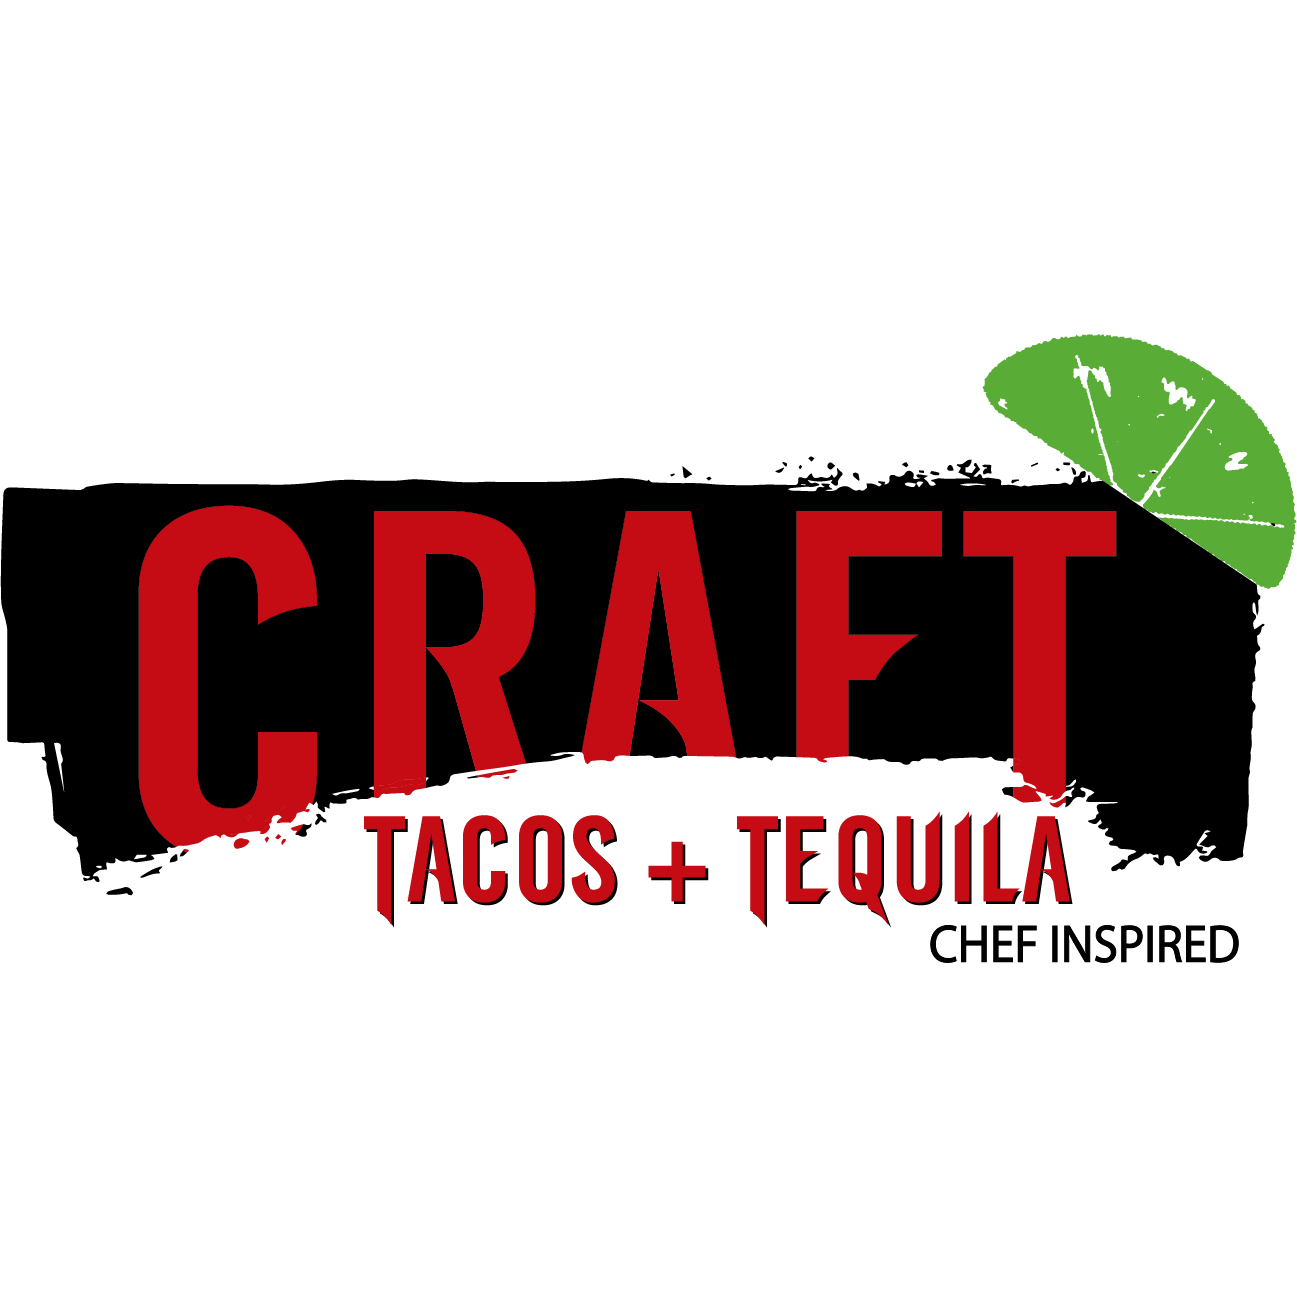 Craft Tacos and Tequila